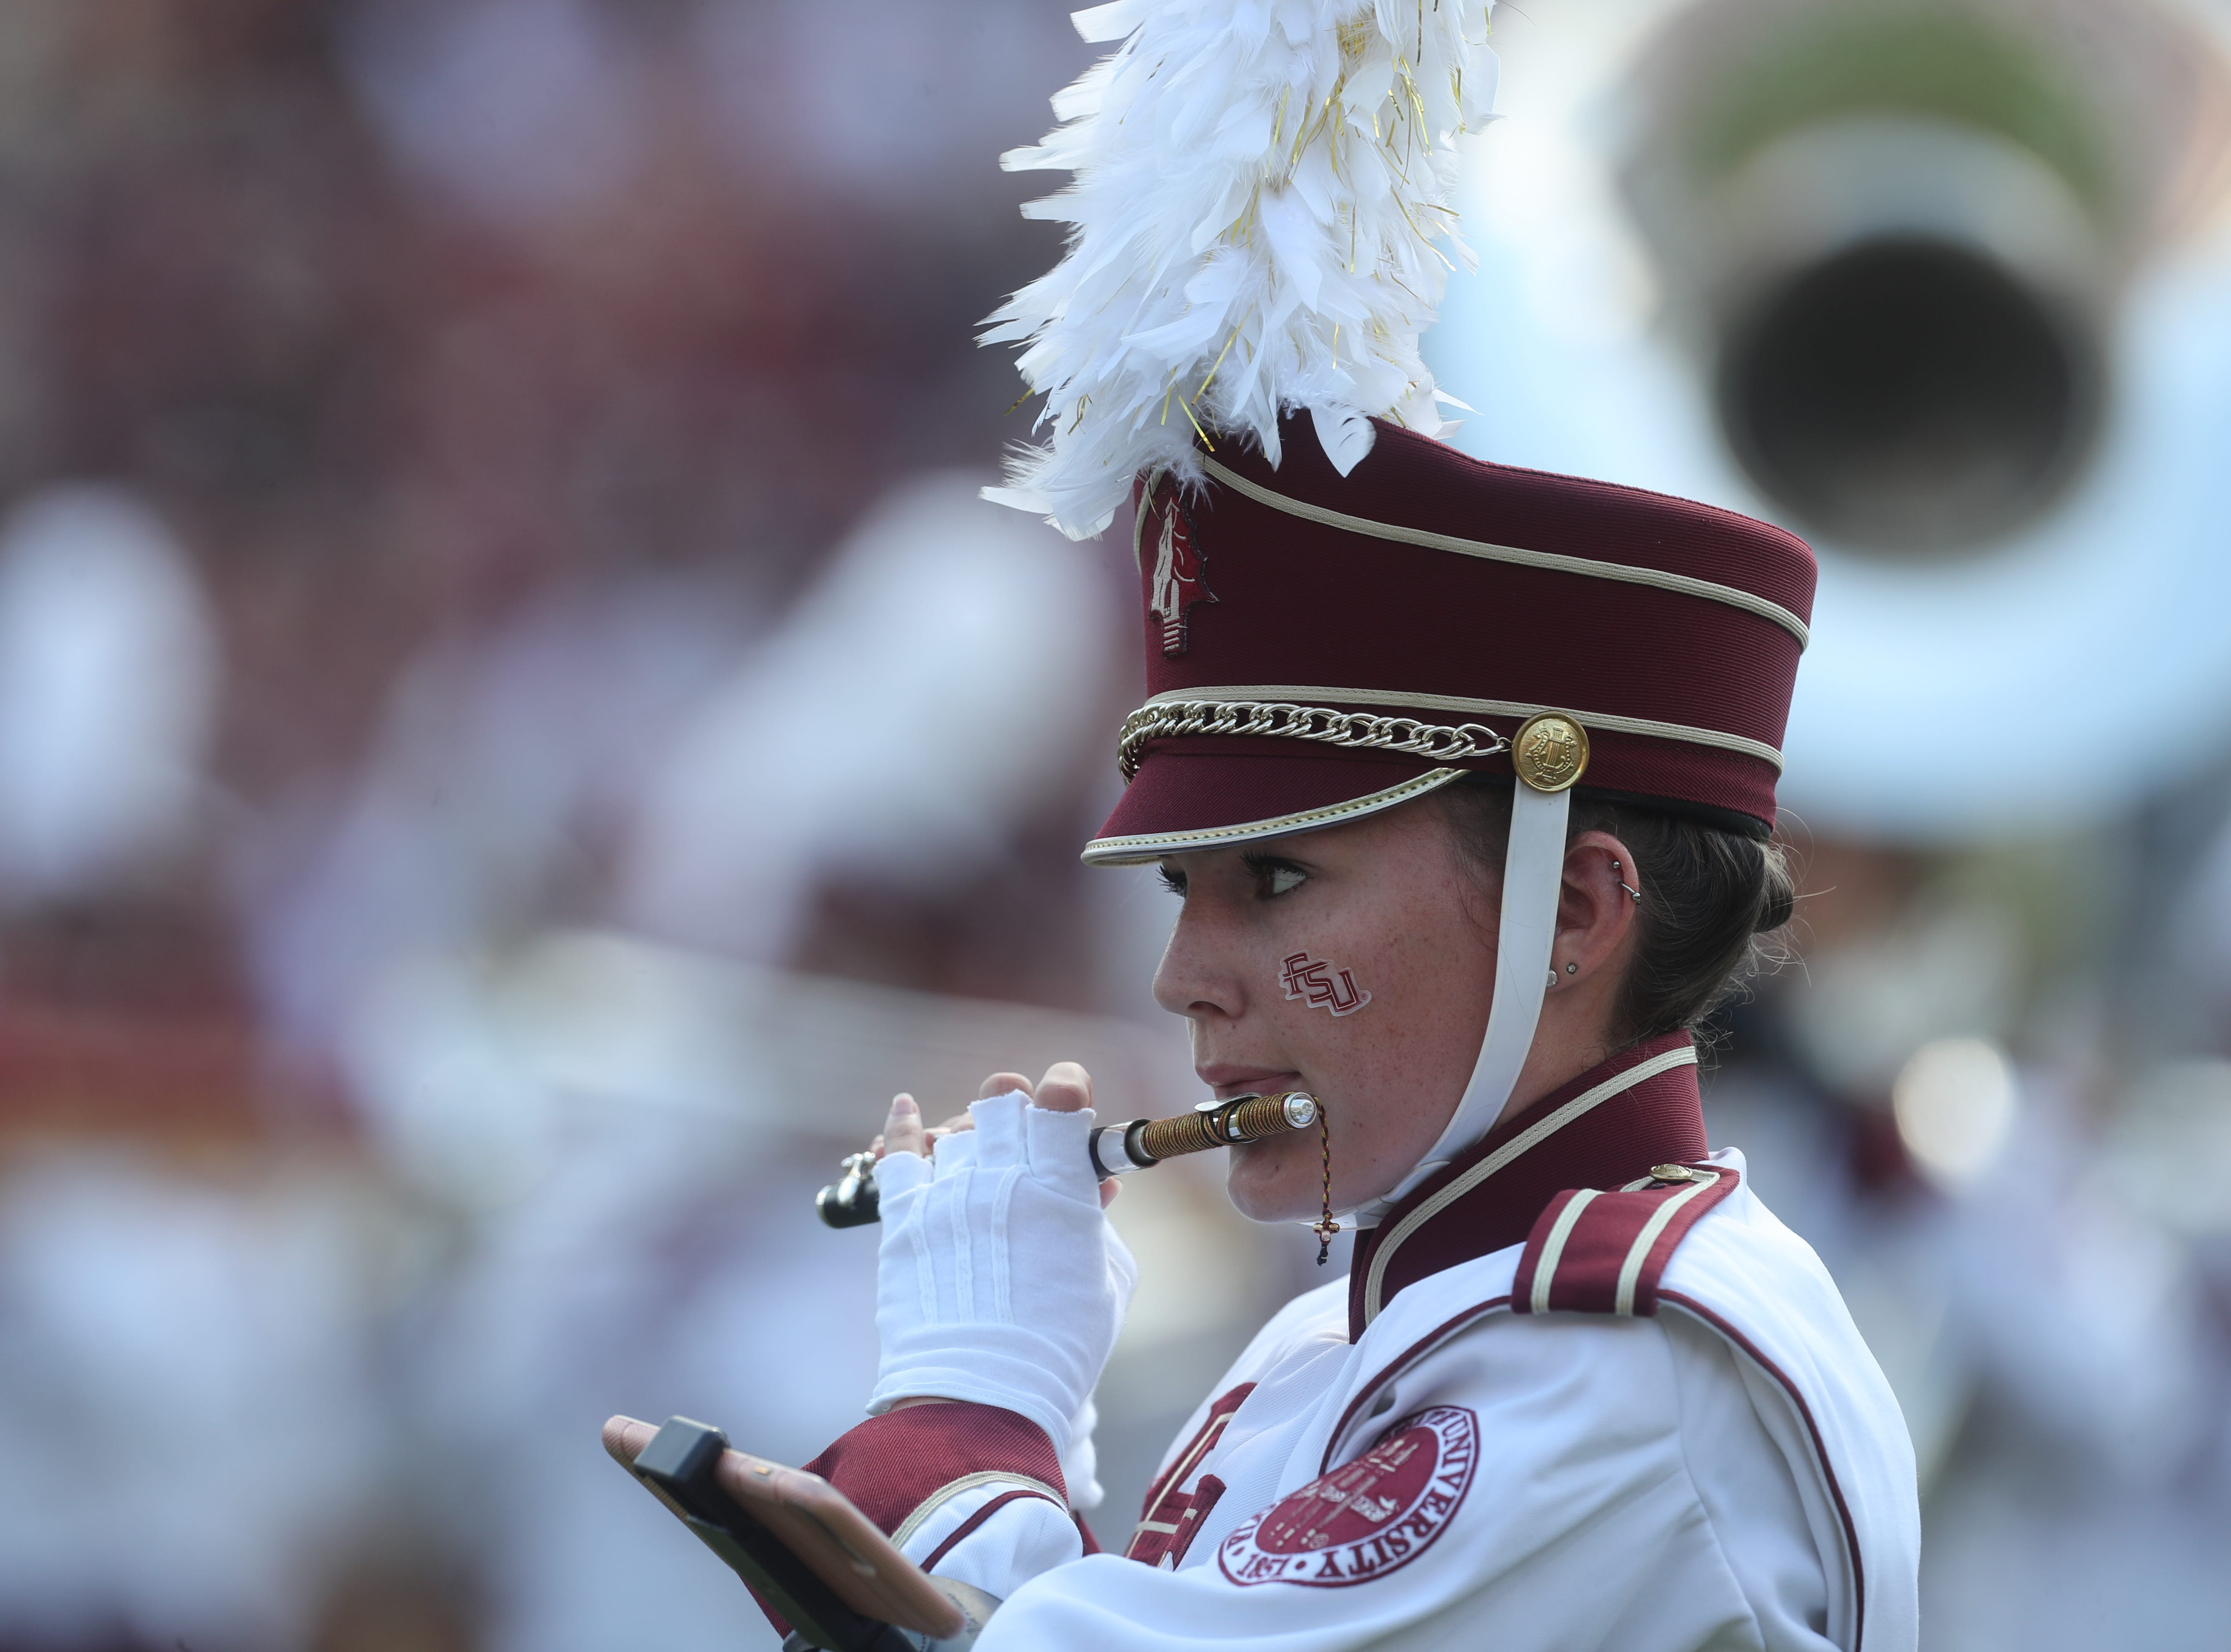 The Florida State University Marching Chiefs  perform before a game between the Florida State University Seminoles and the Northern Illinois University Huskies at Doak S. Campbell Stadium in Tallahassee, Fla. Saturday, September 22, 2018.